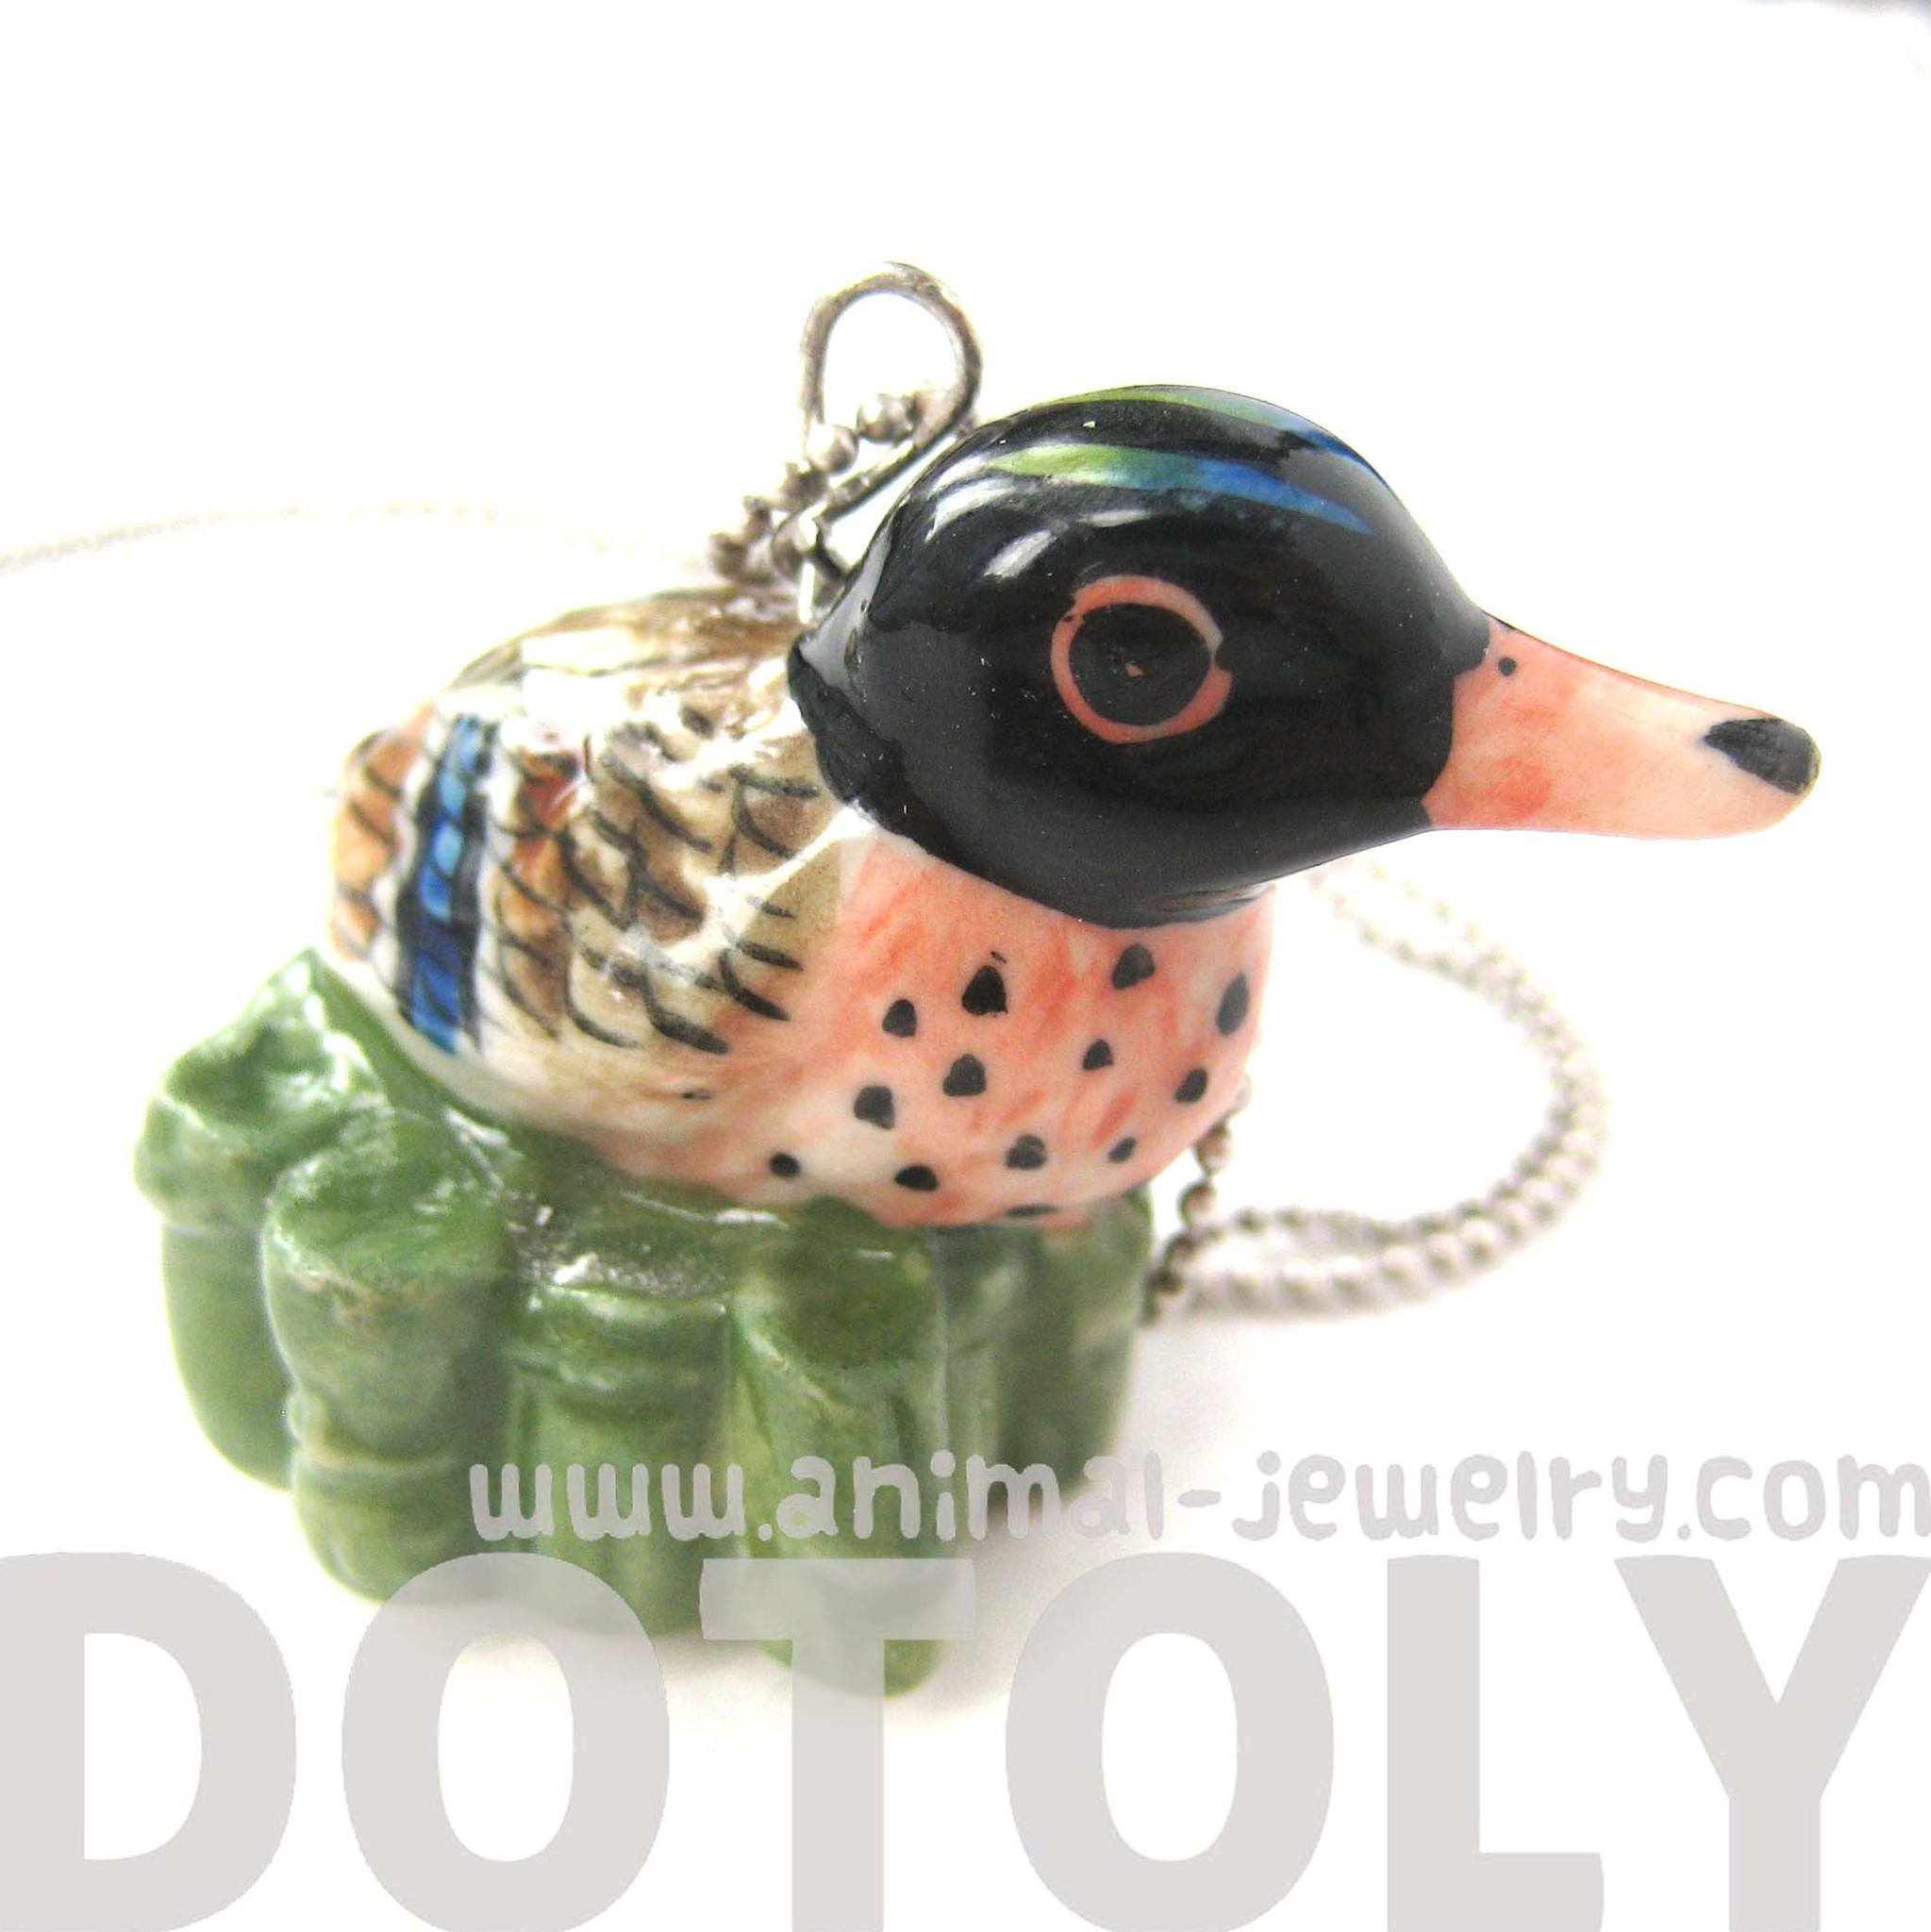 duck-bird-porcelain-ceramic-animal-pendant-necklace-handmade